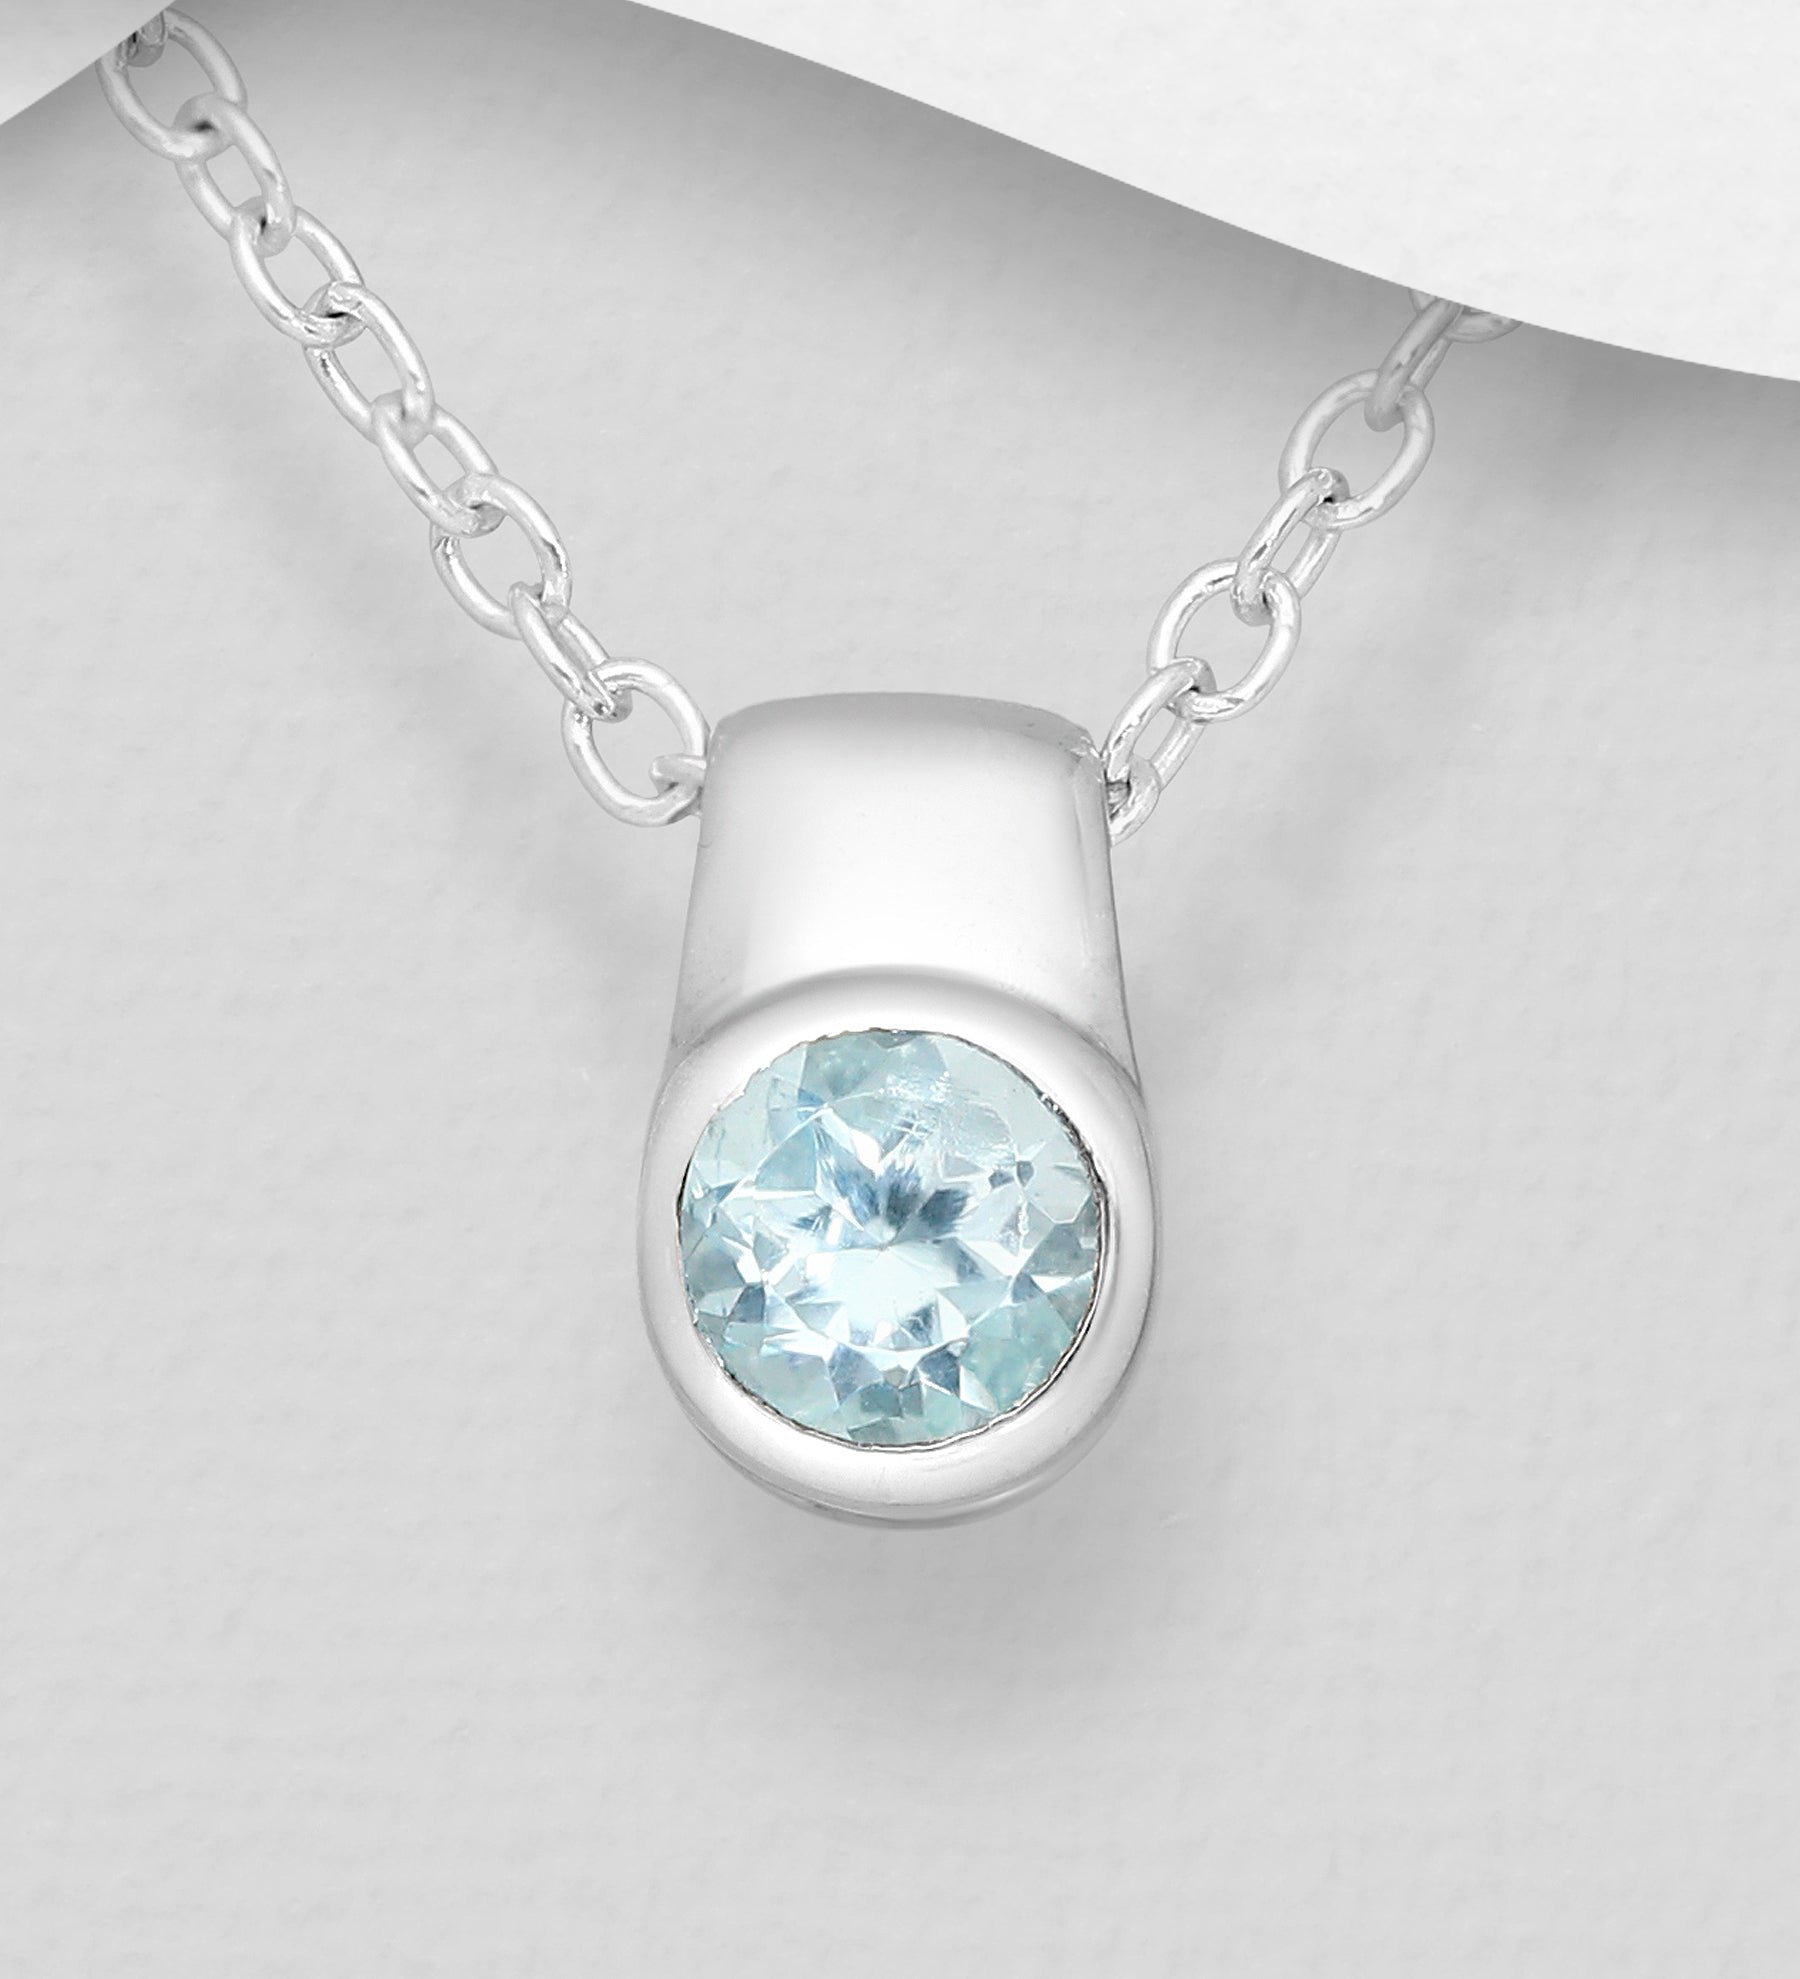 Bezel Solitaire Semi Precious Necklace